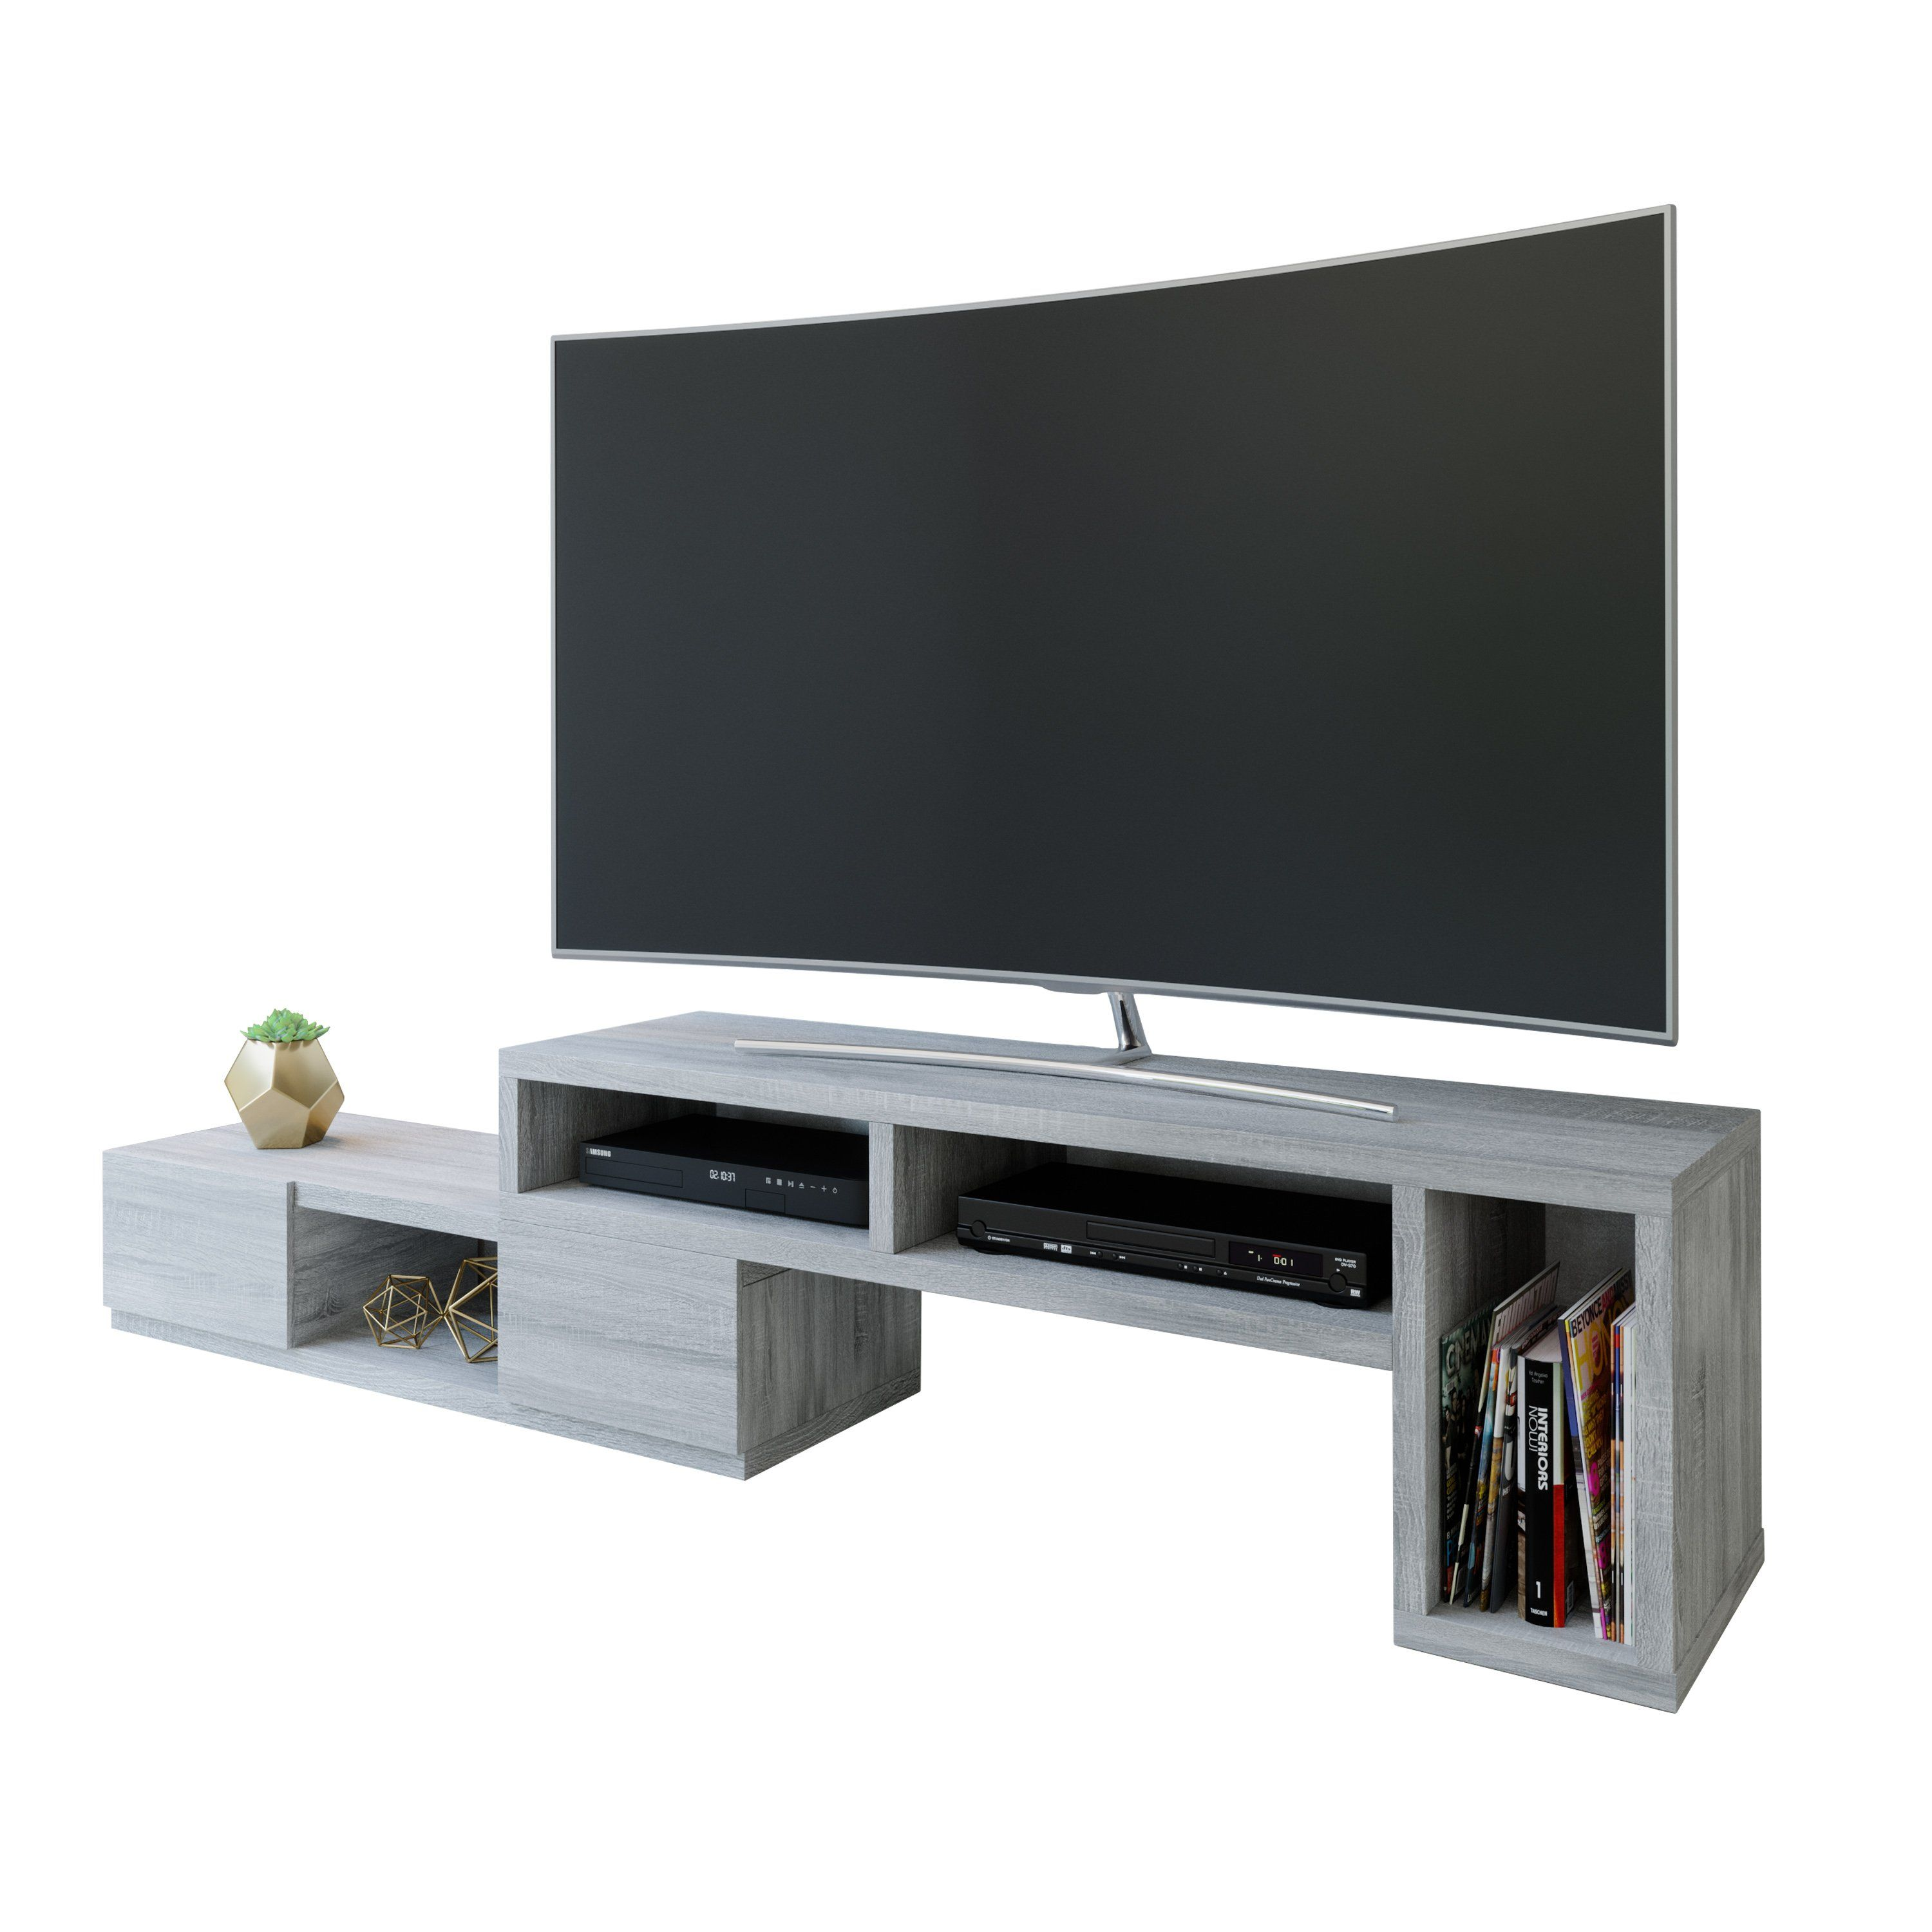 EXPANDABLE TV STAND CONSOLE FOR TV'S UP TO 65